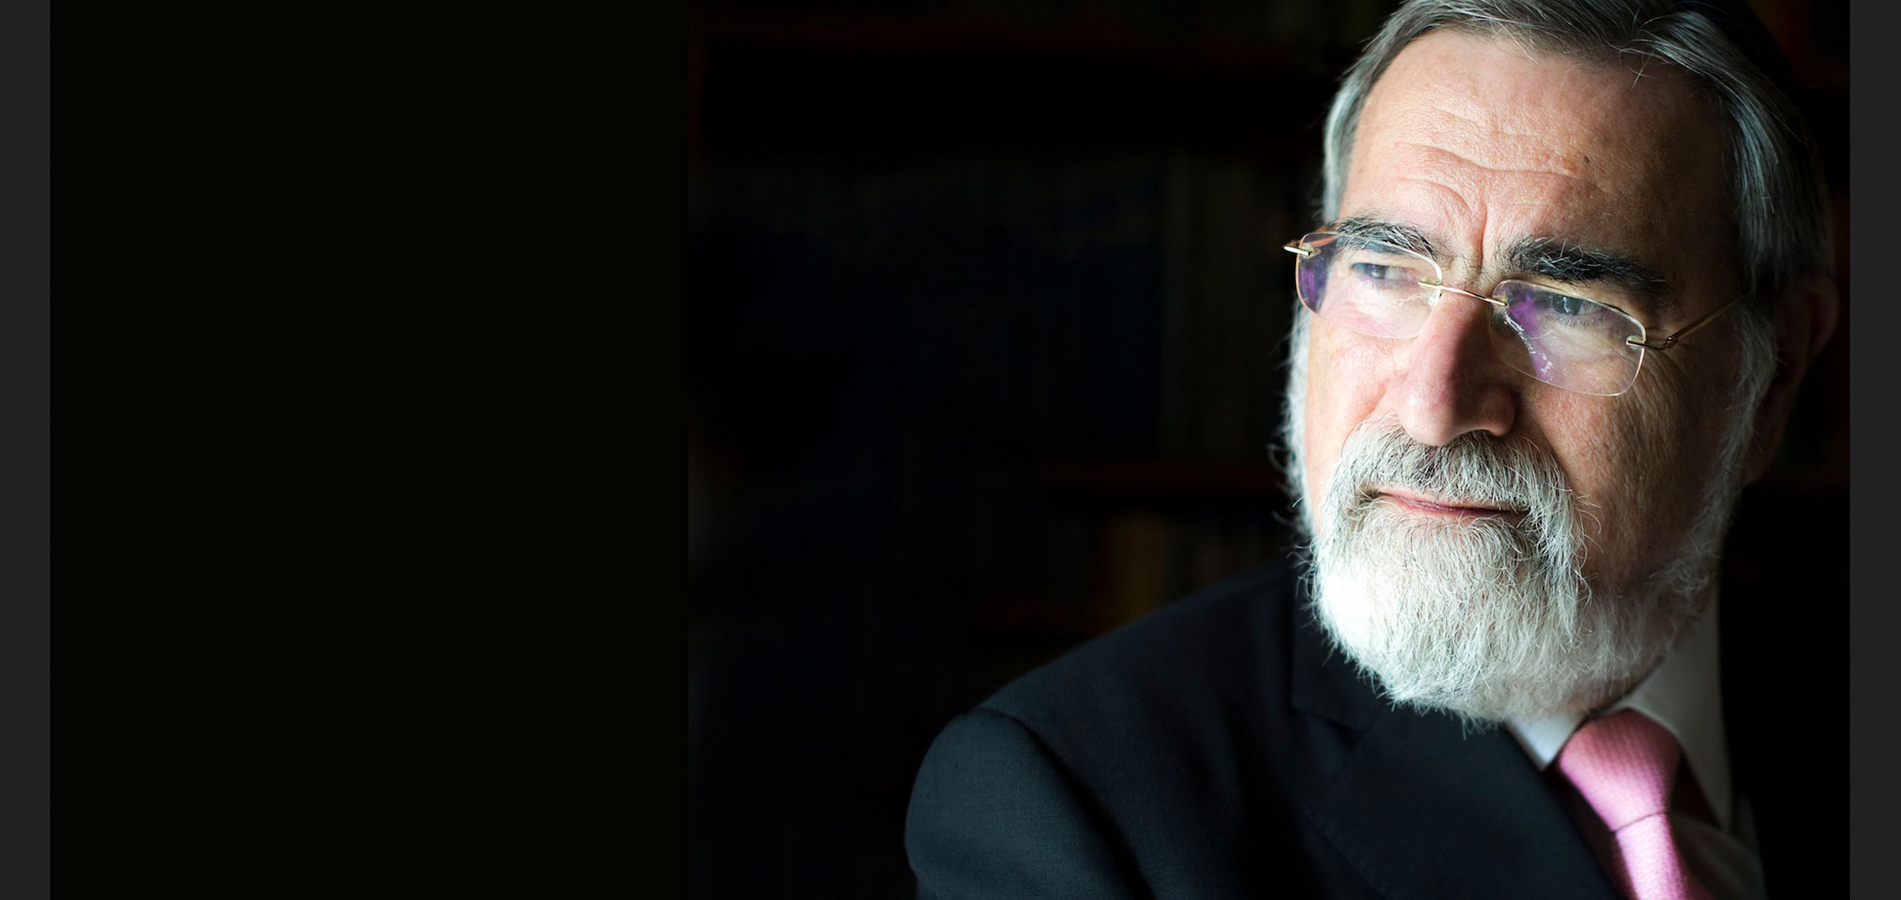 My Sit-down With Rabbi Lord Jonathan Sacks On Faith In Modern Times